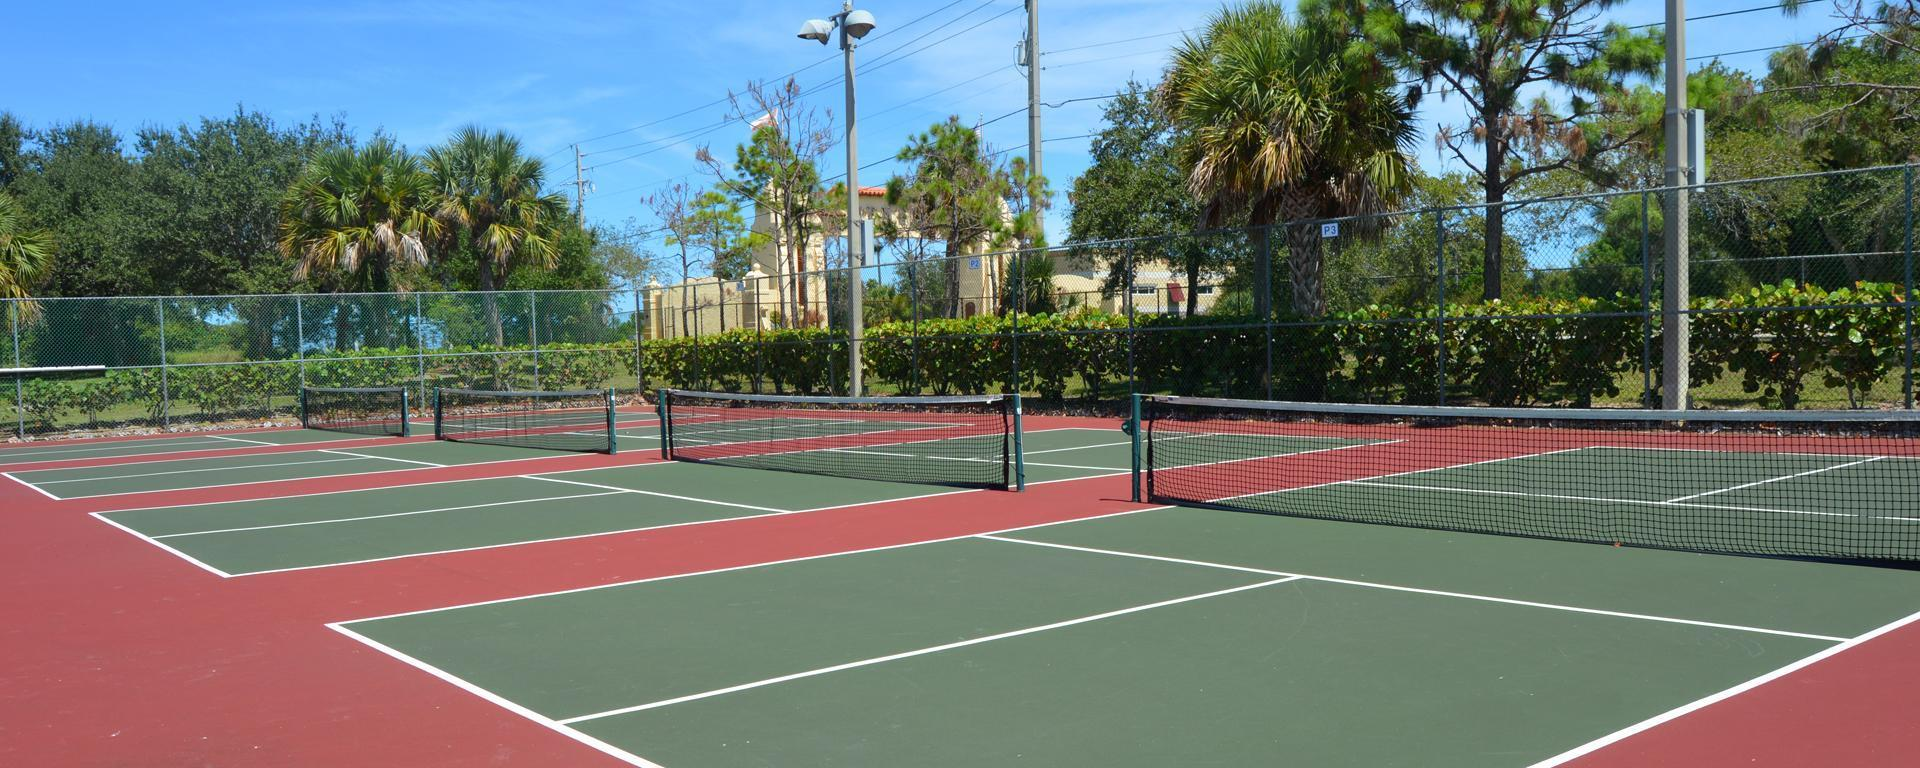 Tennis and pickleball courts at Langford Park